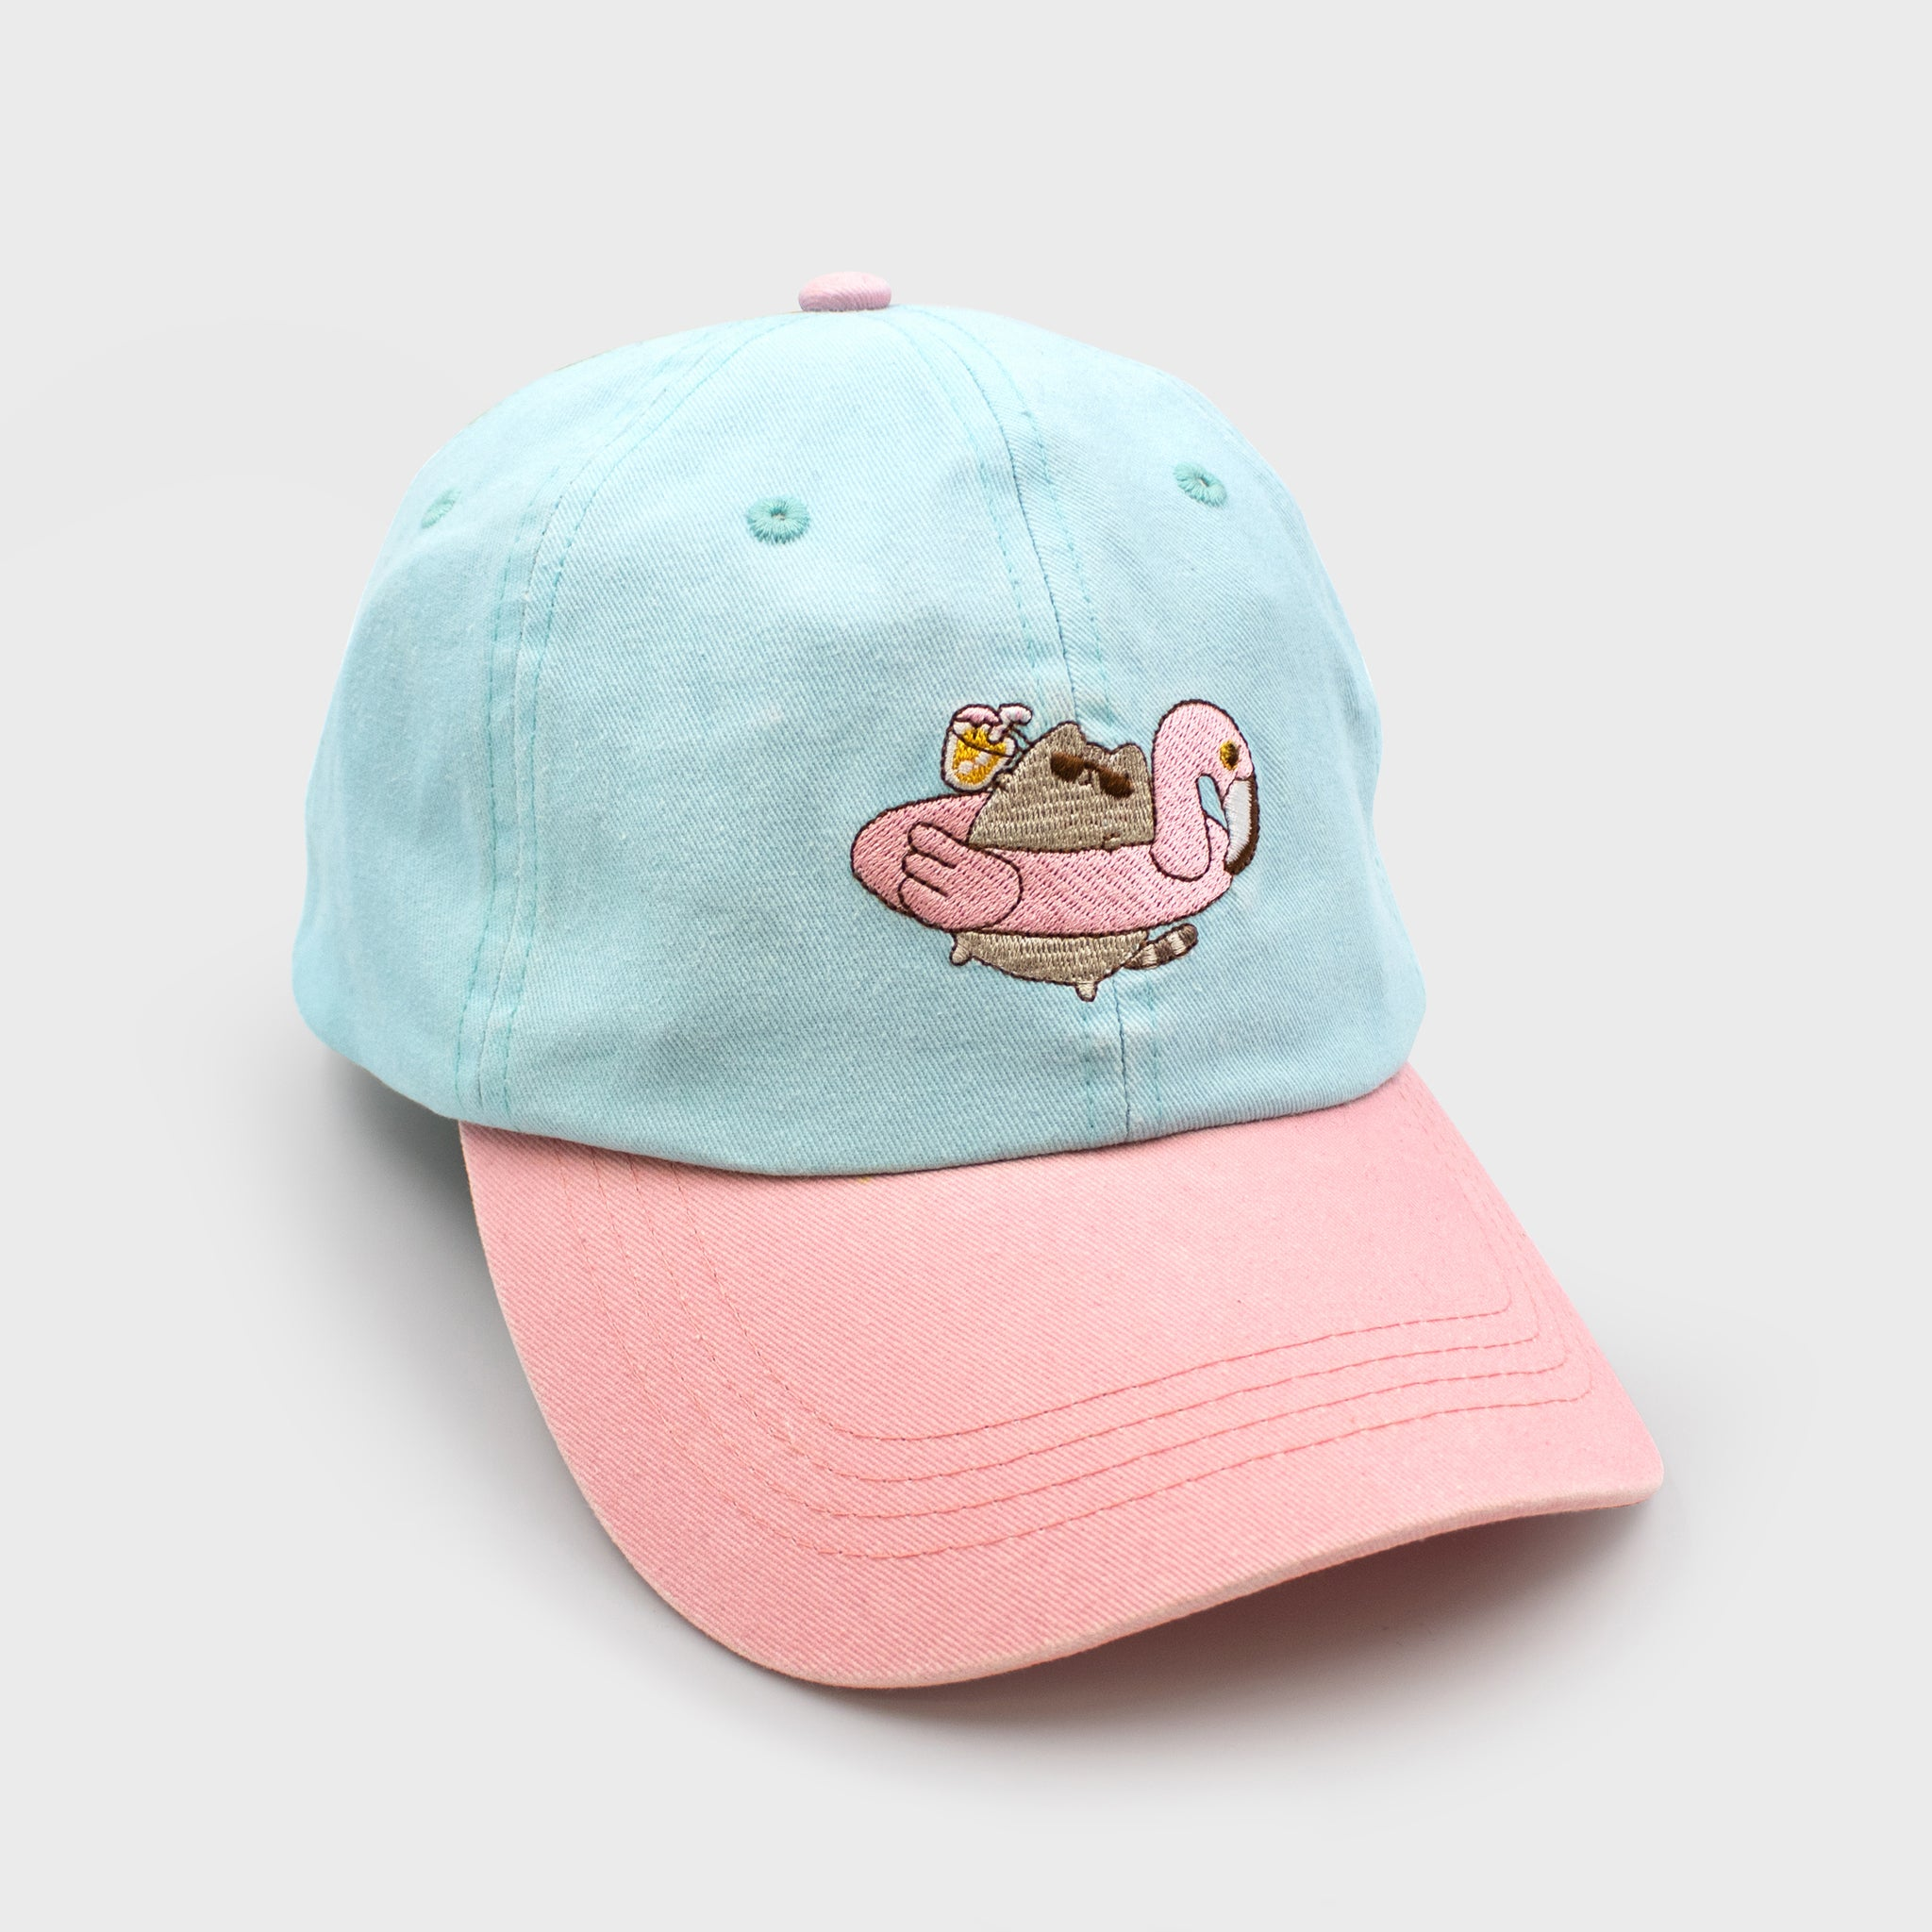 Pusheen - Pool Float Hat